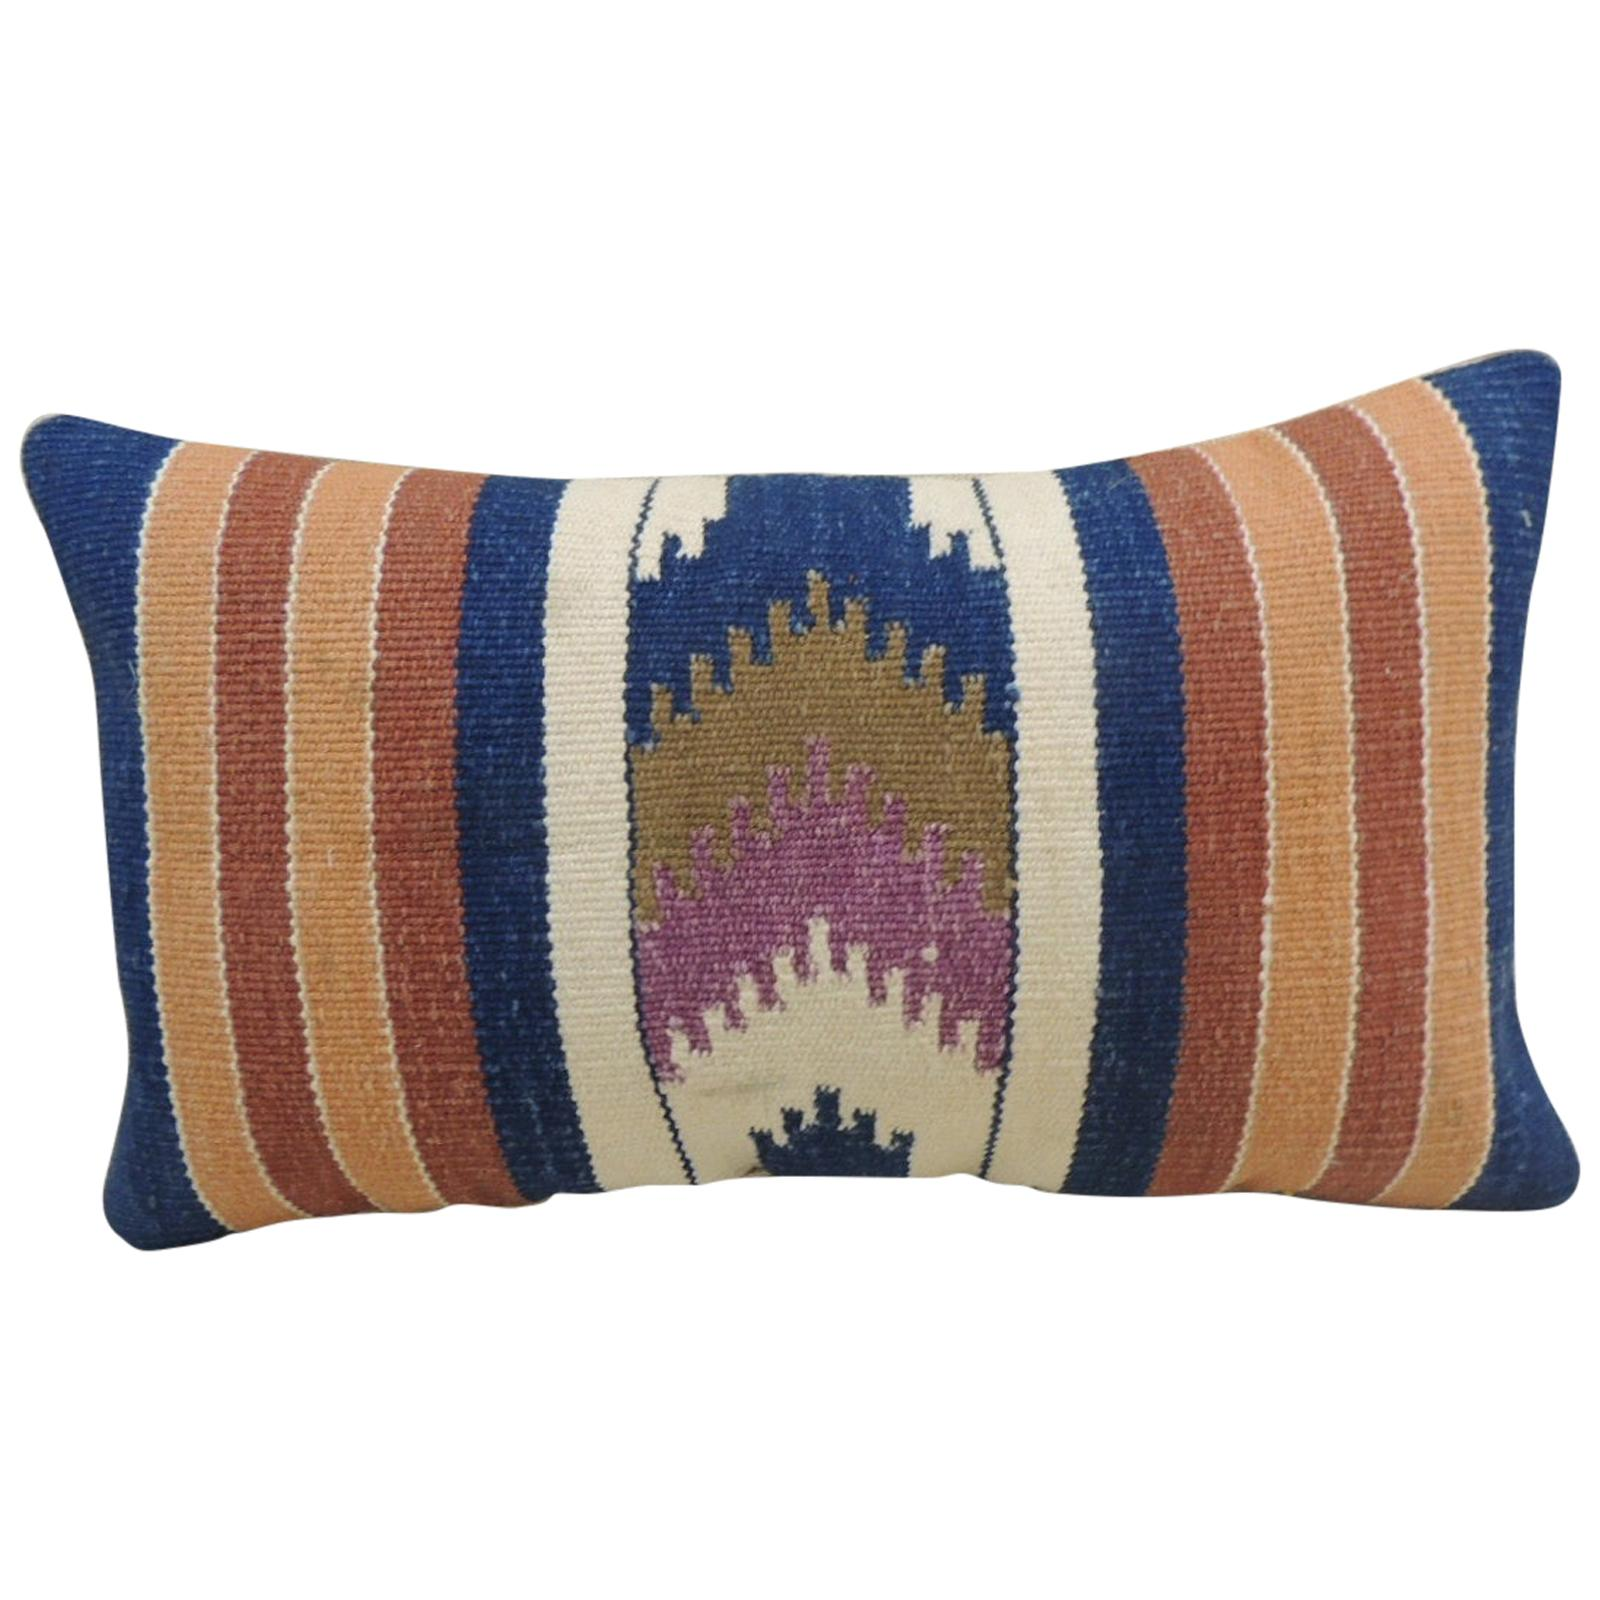 Vintage Orange and Blue Navajo Style Woven Decorative Lumbar Pillow